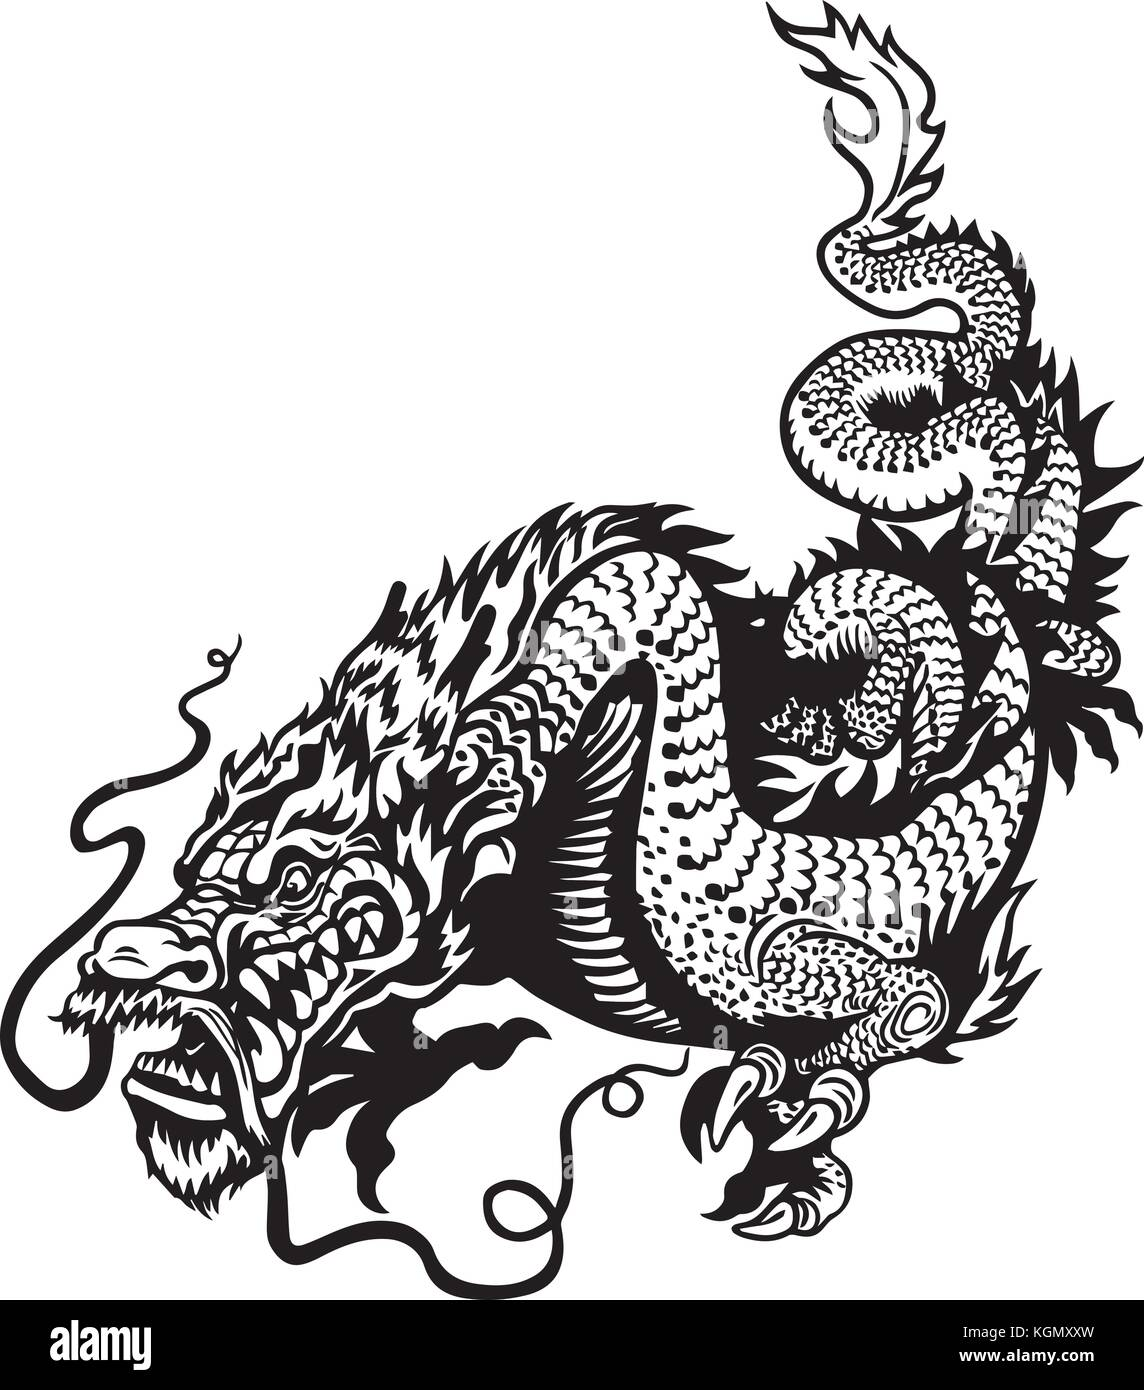 Japanese Dragon Tattoo Stock Photos Amp Japanese Dragon